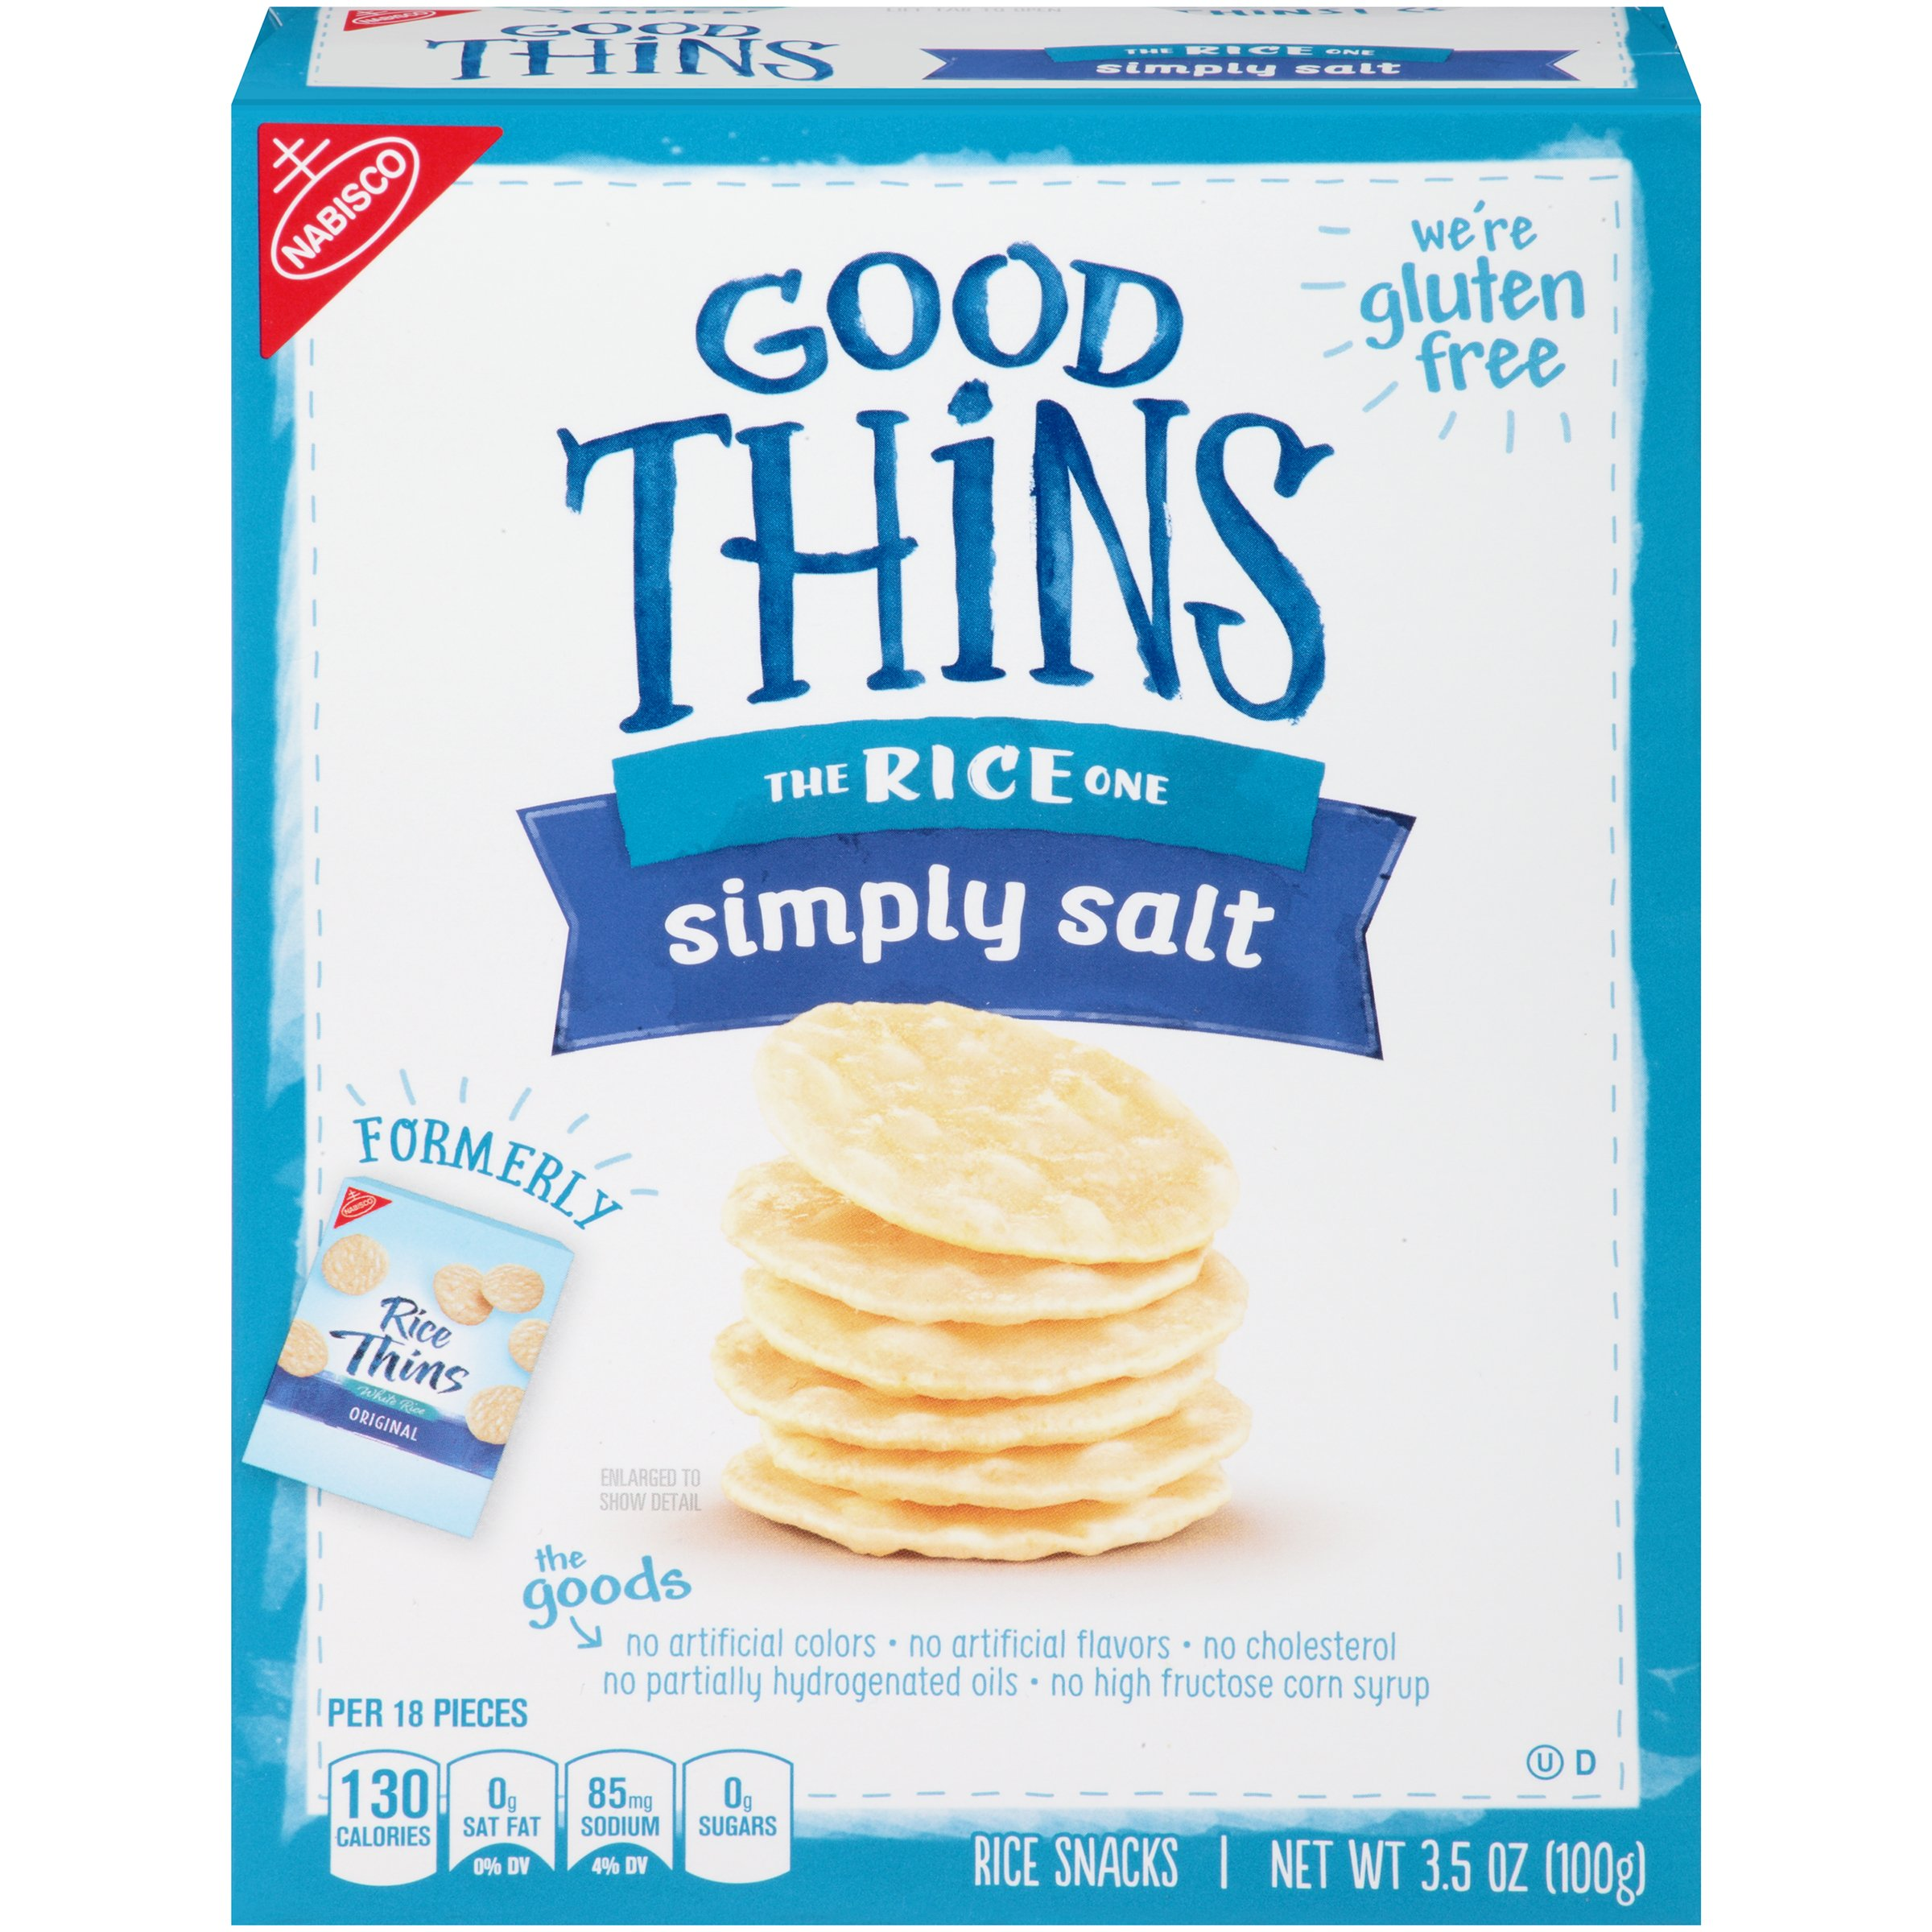 Good Thins Gluten Free Rice Crackers - Simply Salt - 12 Boxes (42 Ounces Total) by Good Thins